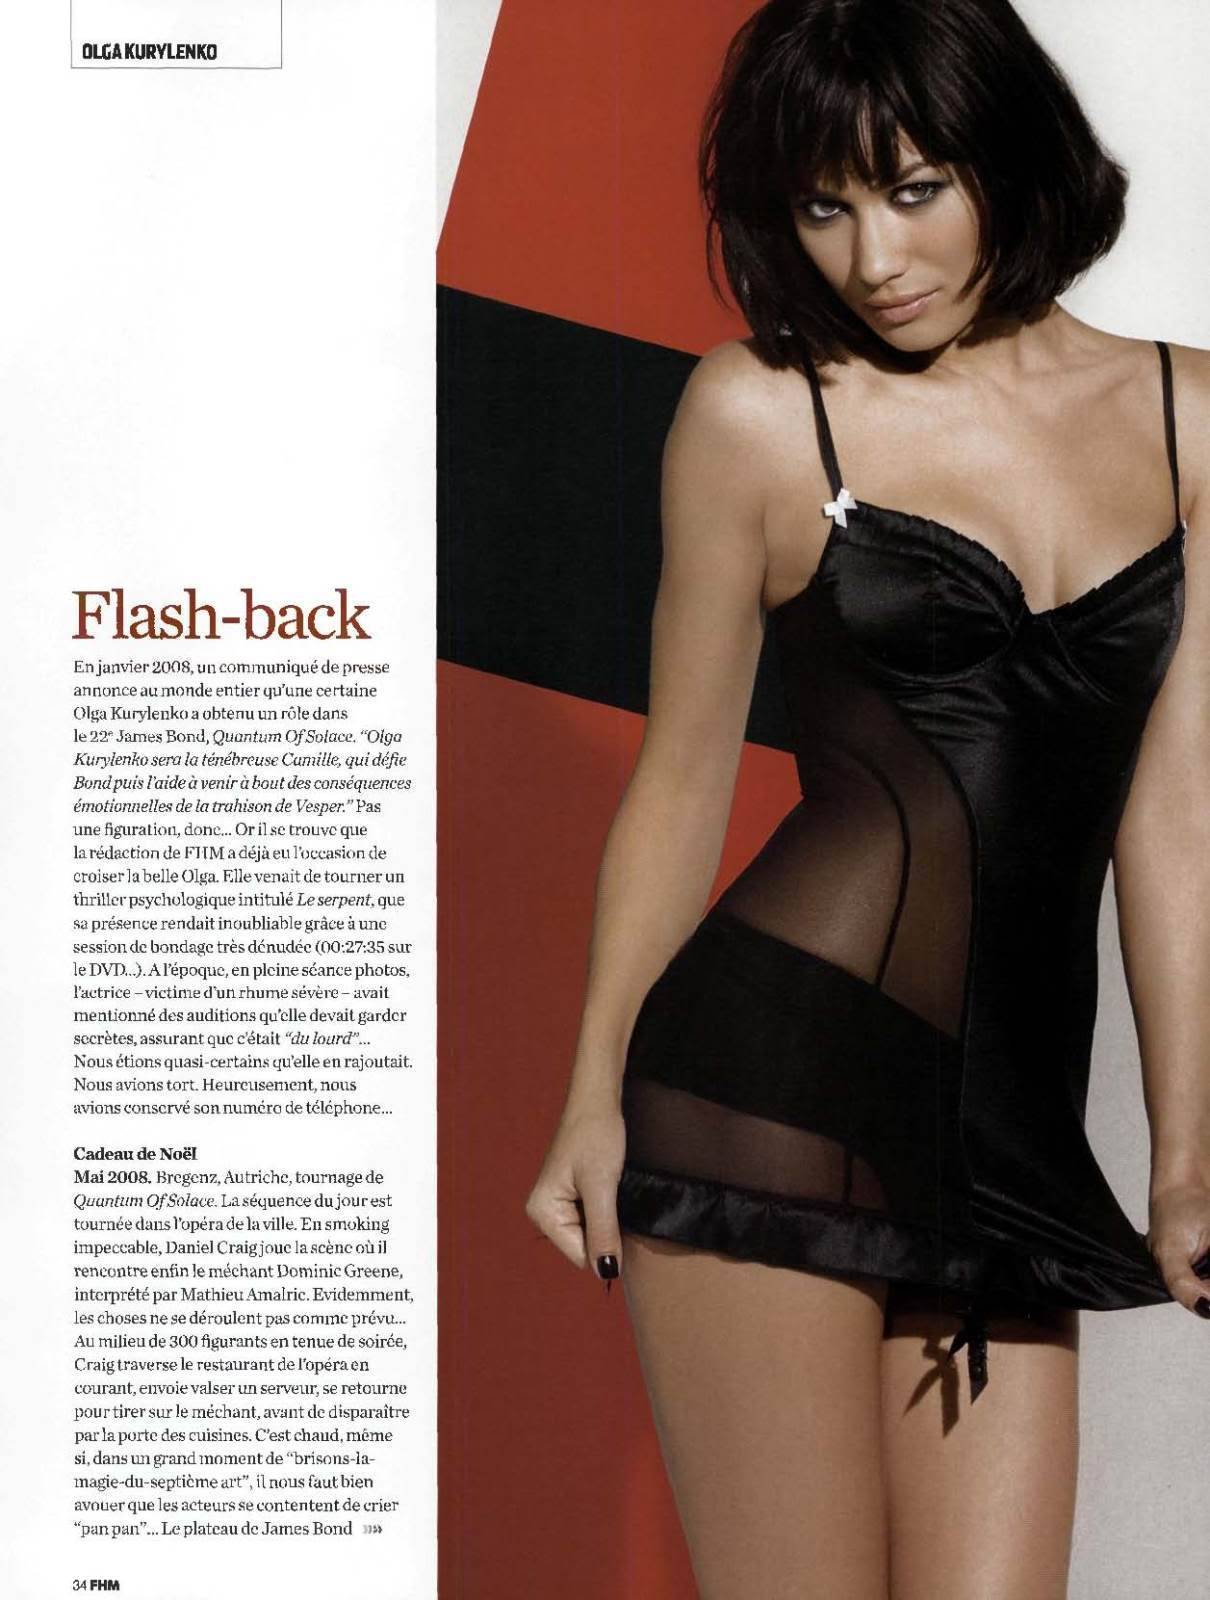 Olga Kurylenko - FHM Scans - Sexy Actress Pictures | Hot Actress Pictures - ActressSnaps.com